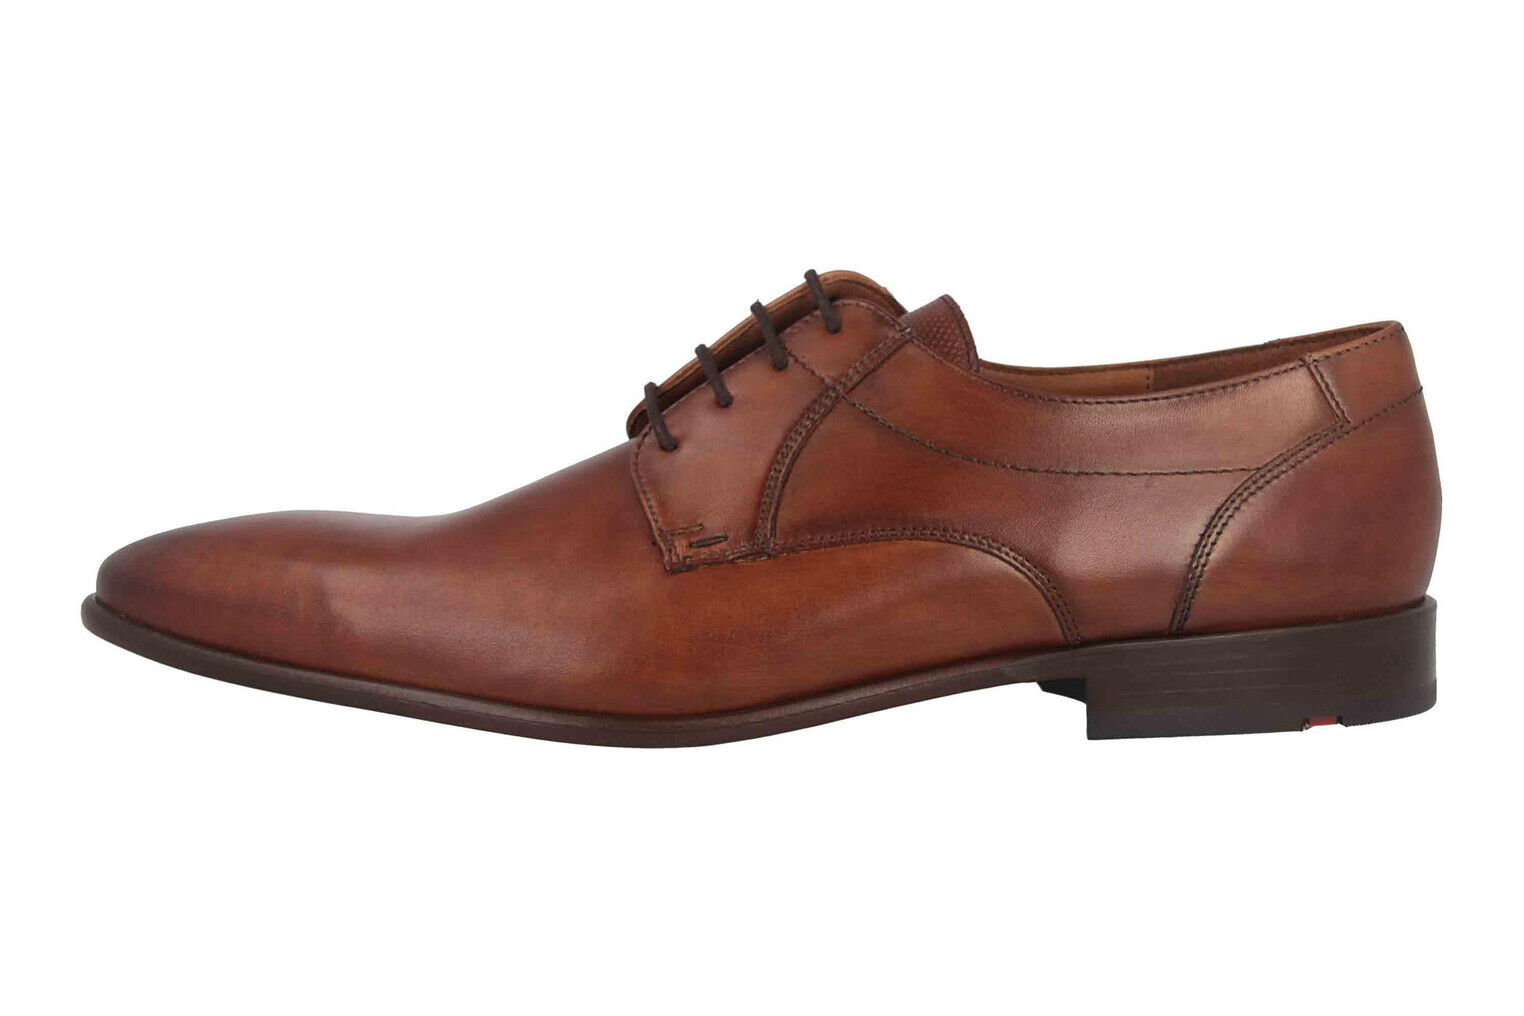 Lloyd Manon Business-zapatos en talla extragrande marrón 19-168-12 grandes zapatos caballero